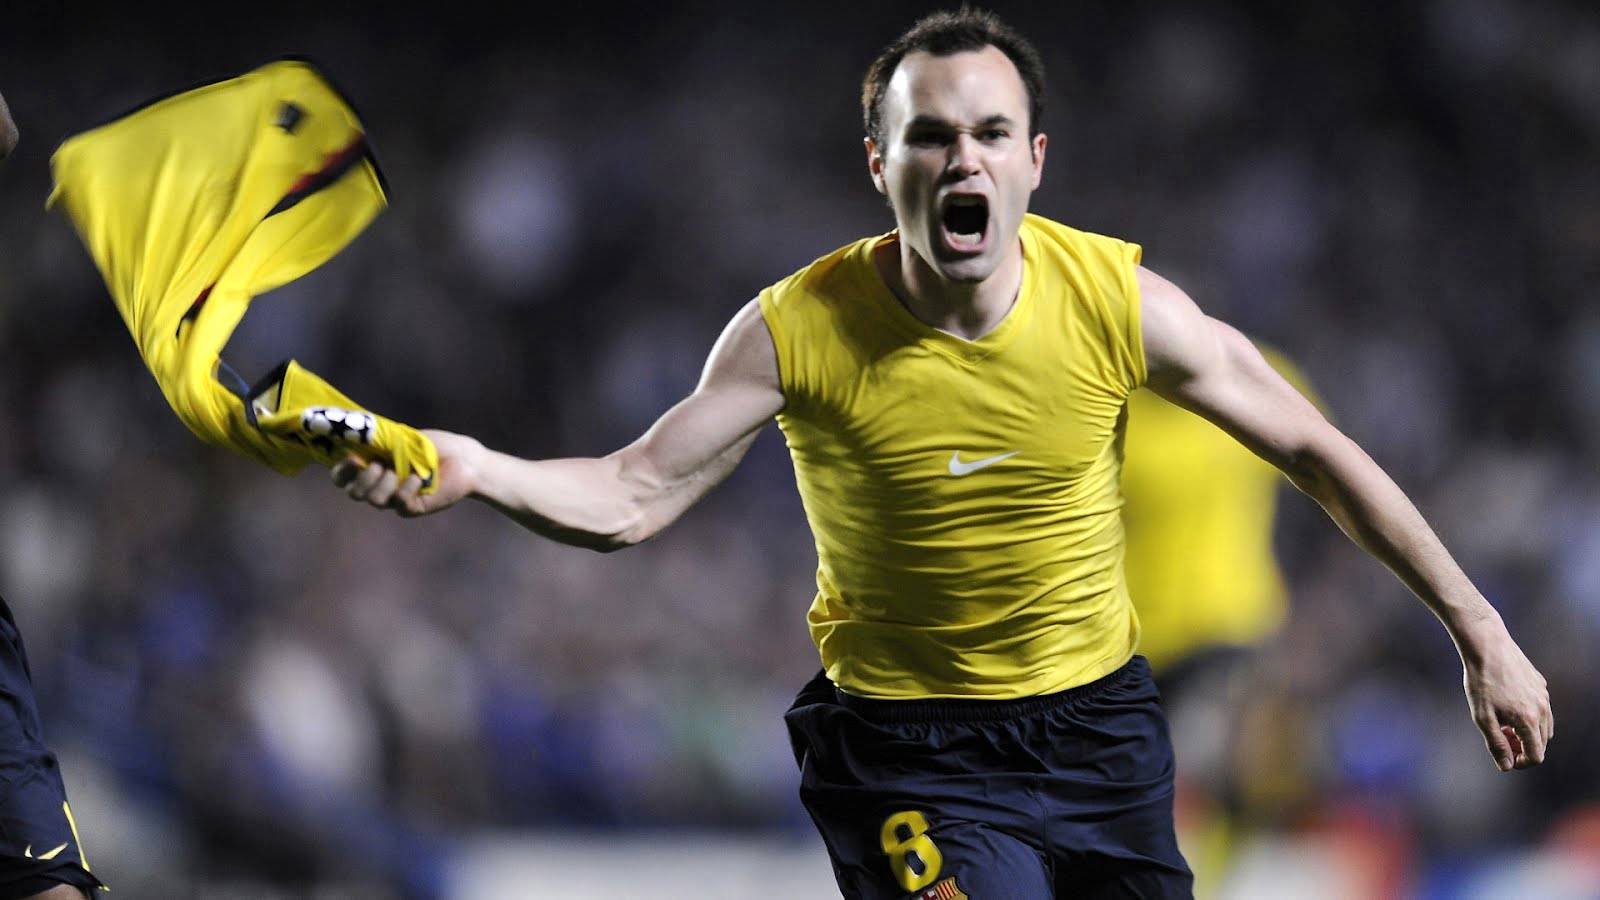 Andres Iniesta Spanish Footballer Wallpapers | HD Wallpapers